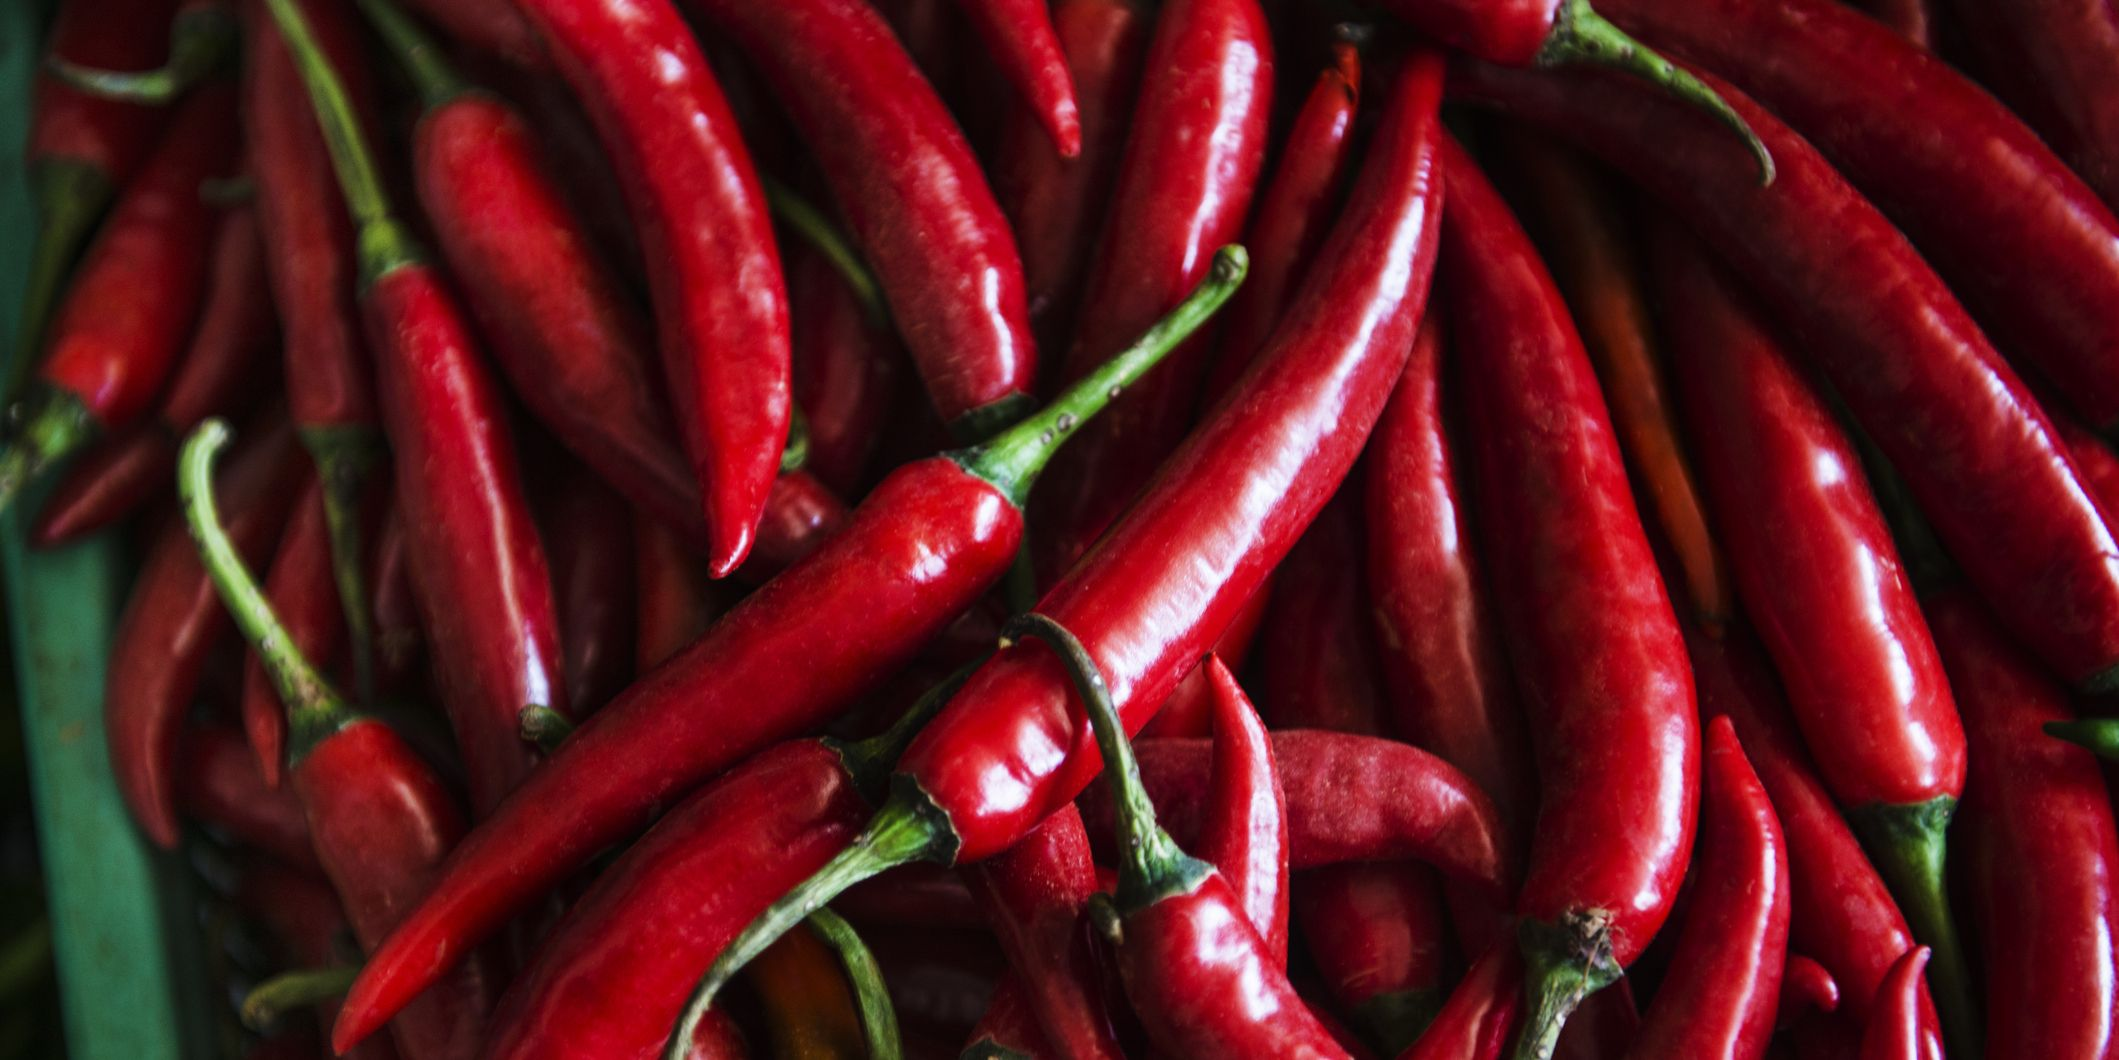 Spicy red chili peppers at the Central Market